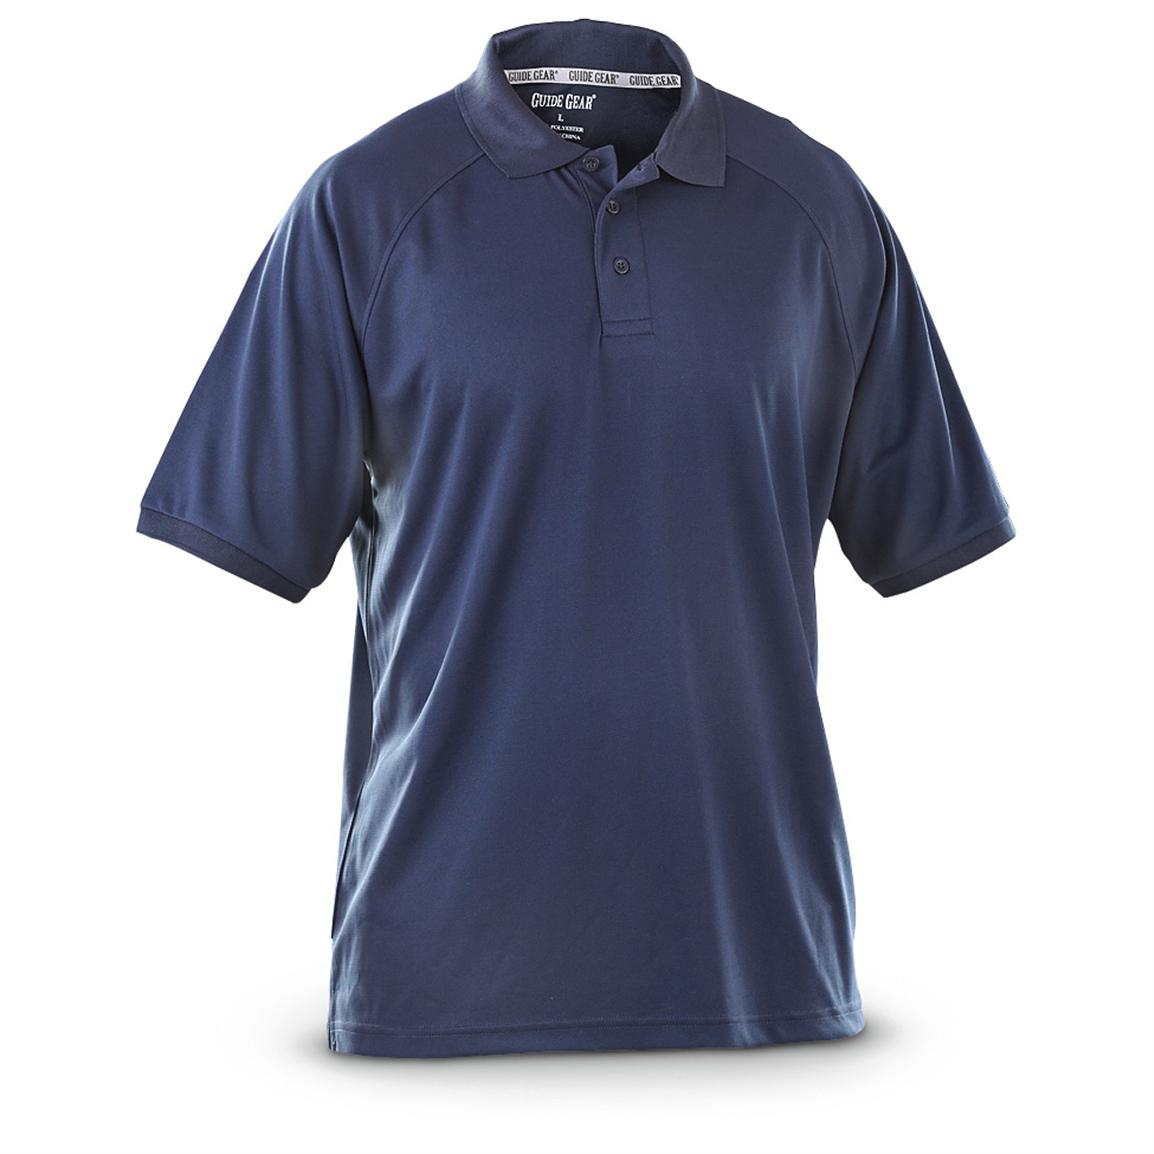 Guide Gear Men's Performance Short Sleeve Polo Shirt, Navy